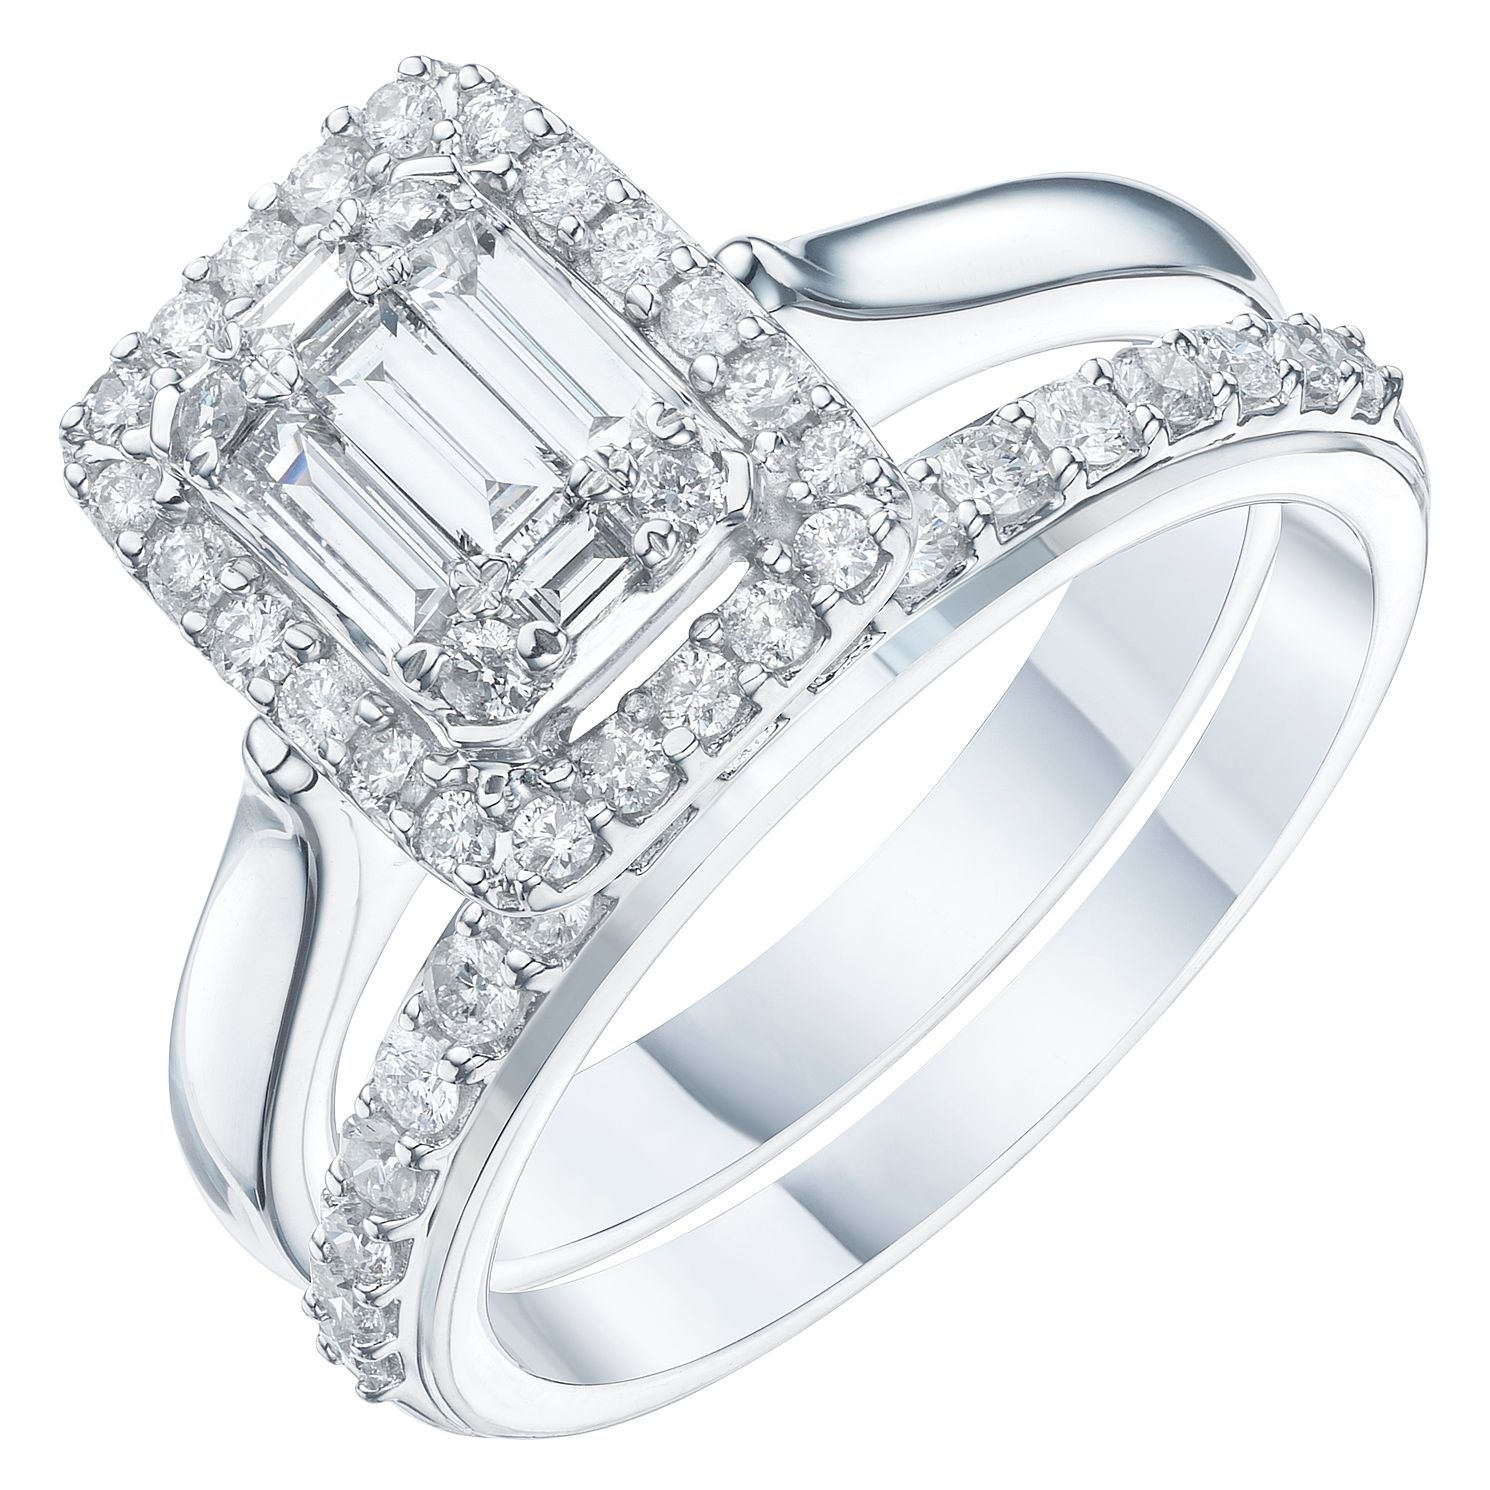 Perfect Fit 9ct White Gold 3/4ct Diamond Baguette Bridal Set - Product number 6229212